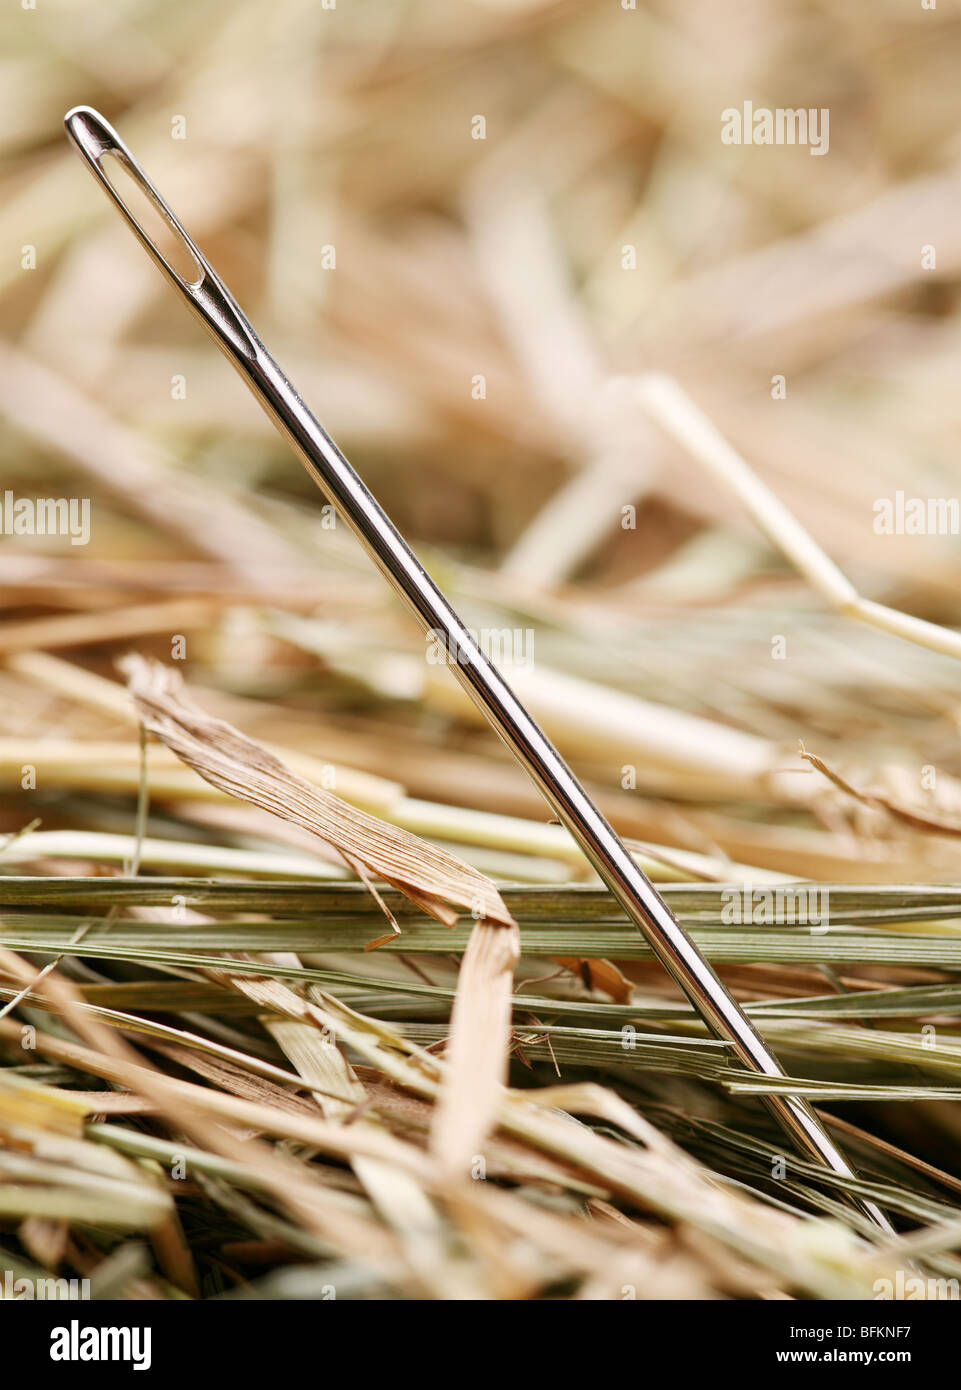 Needle is in a haystack - Stock Image